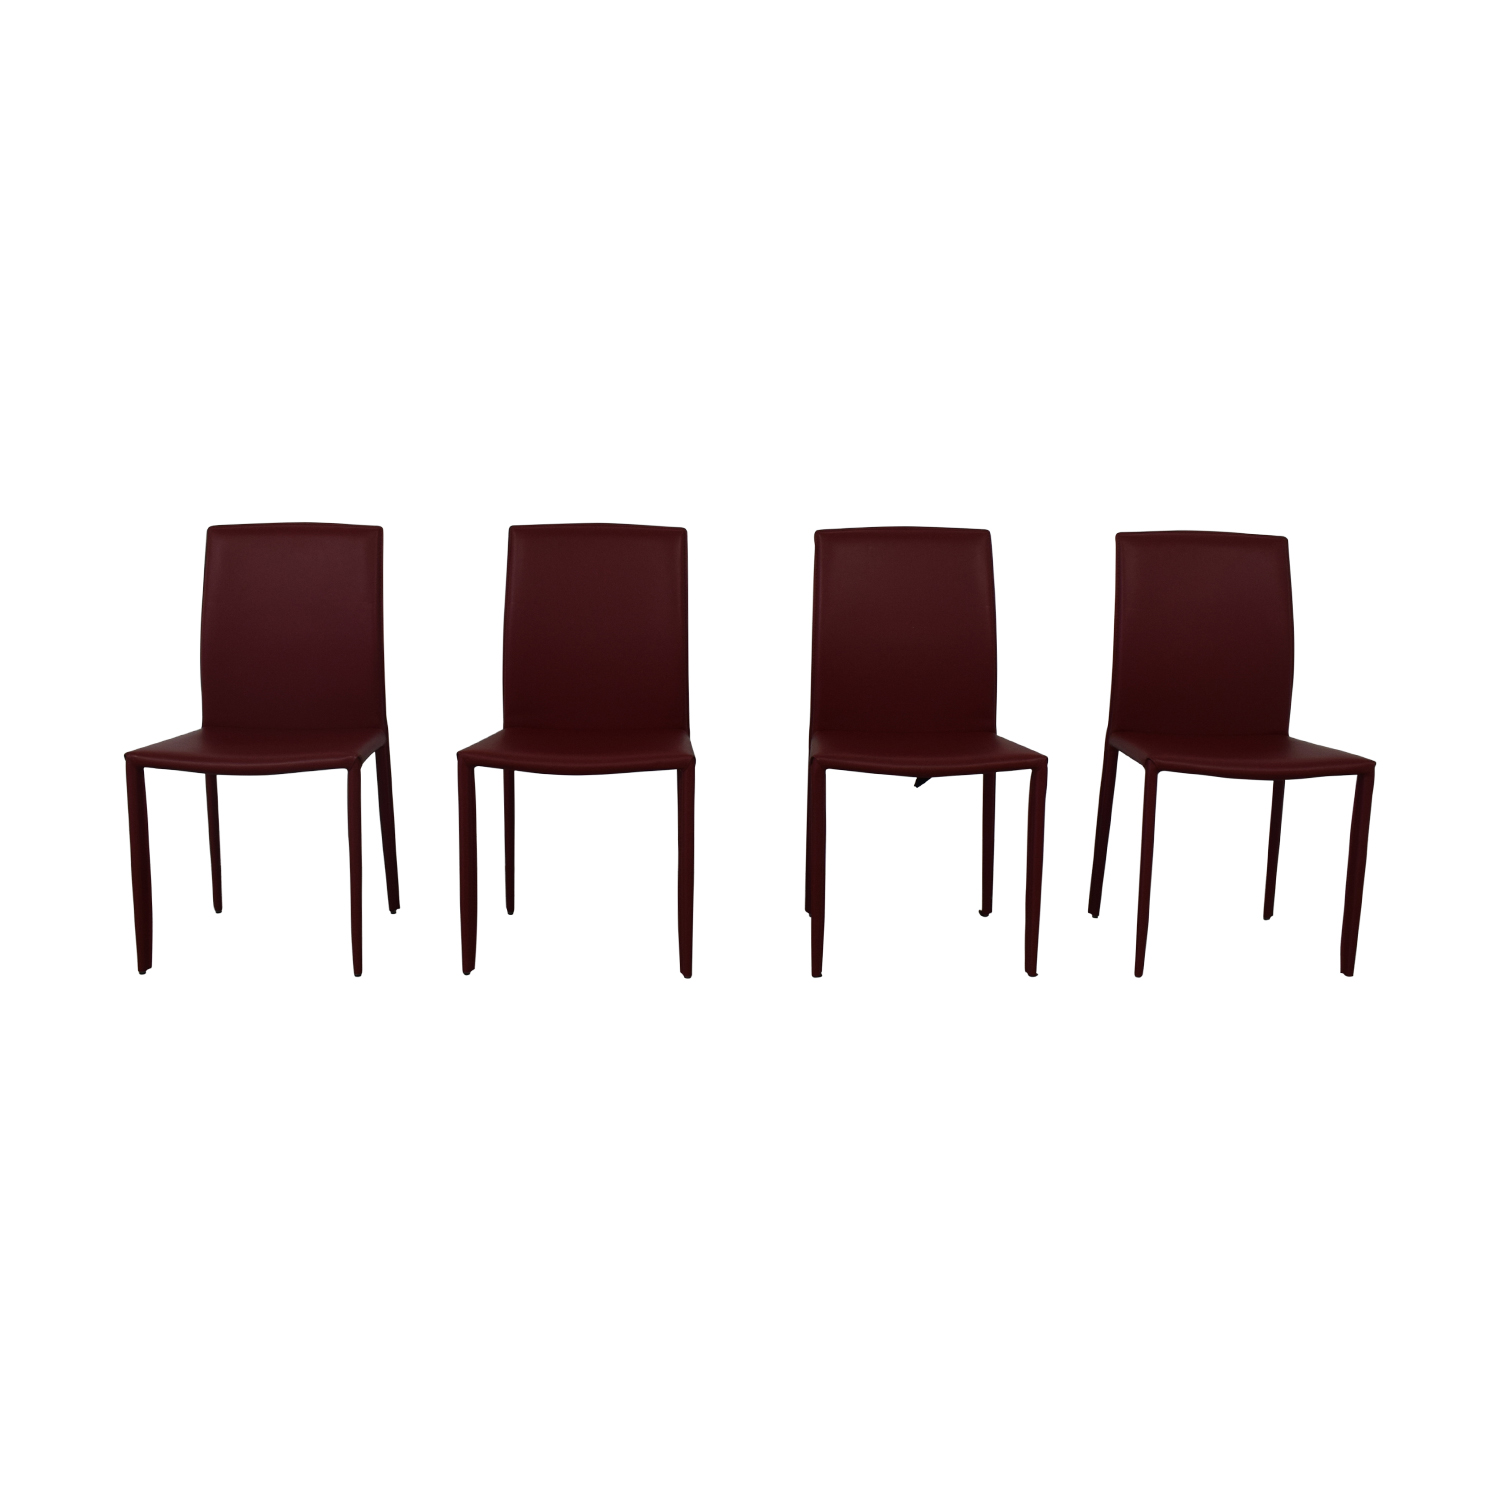 Modloft Modloft Dining Chairs dimensions